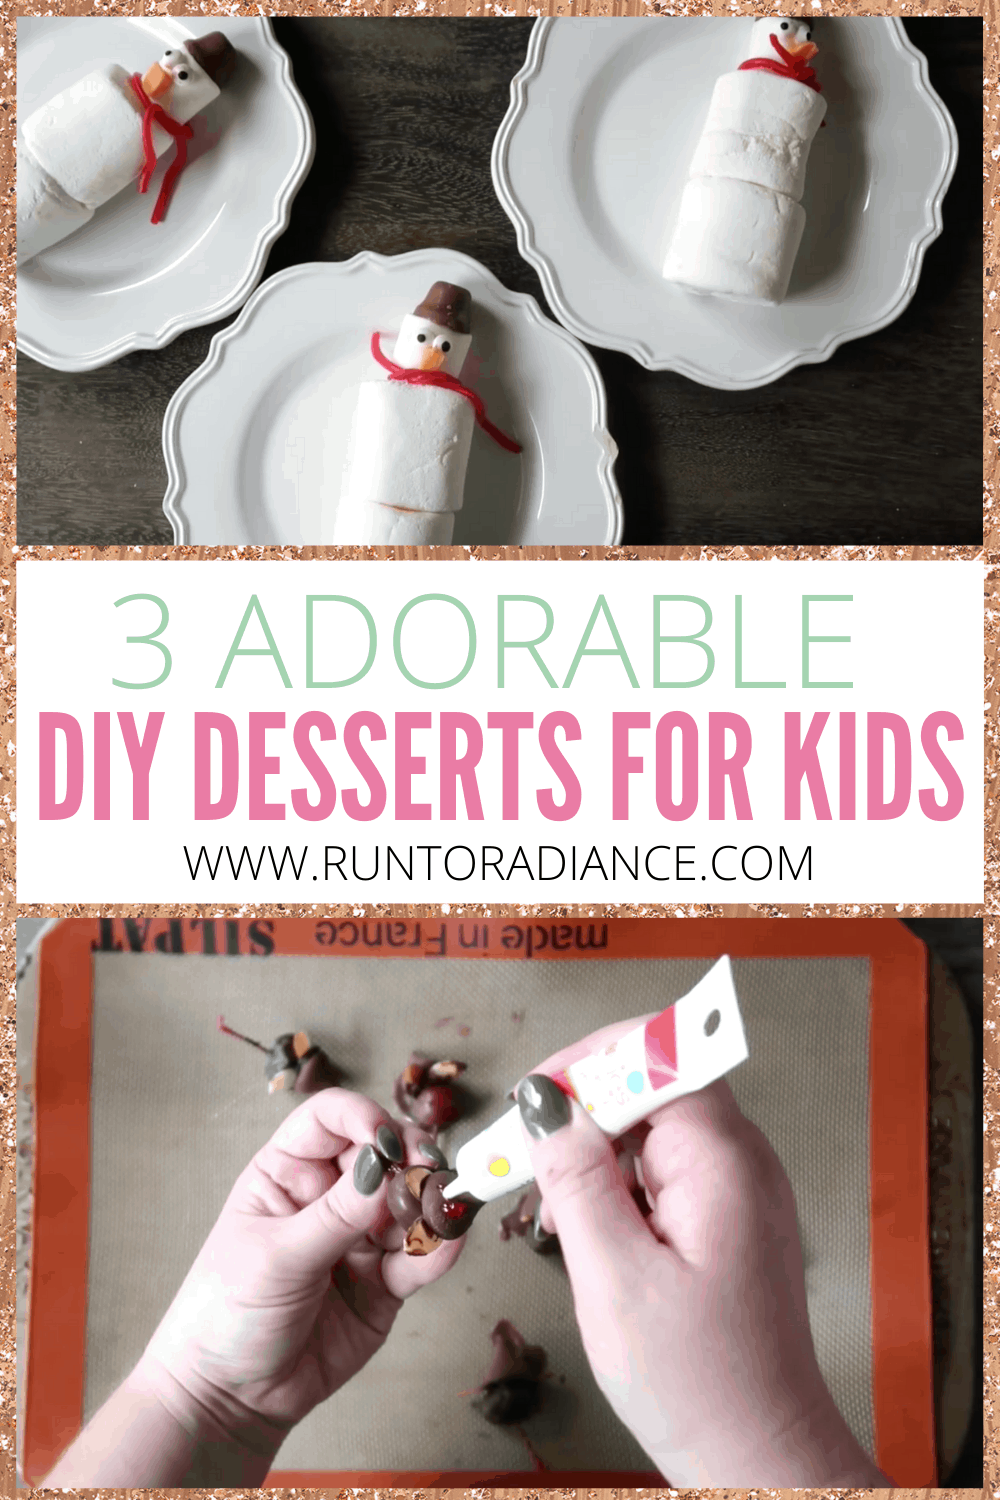 Yummy marshmallow and chocolate winter desserts for kids